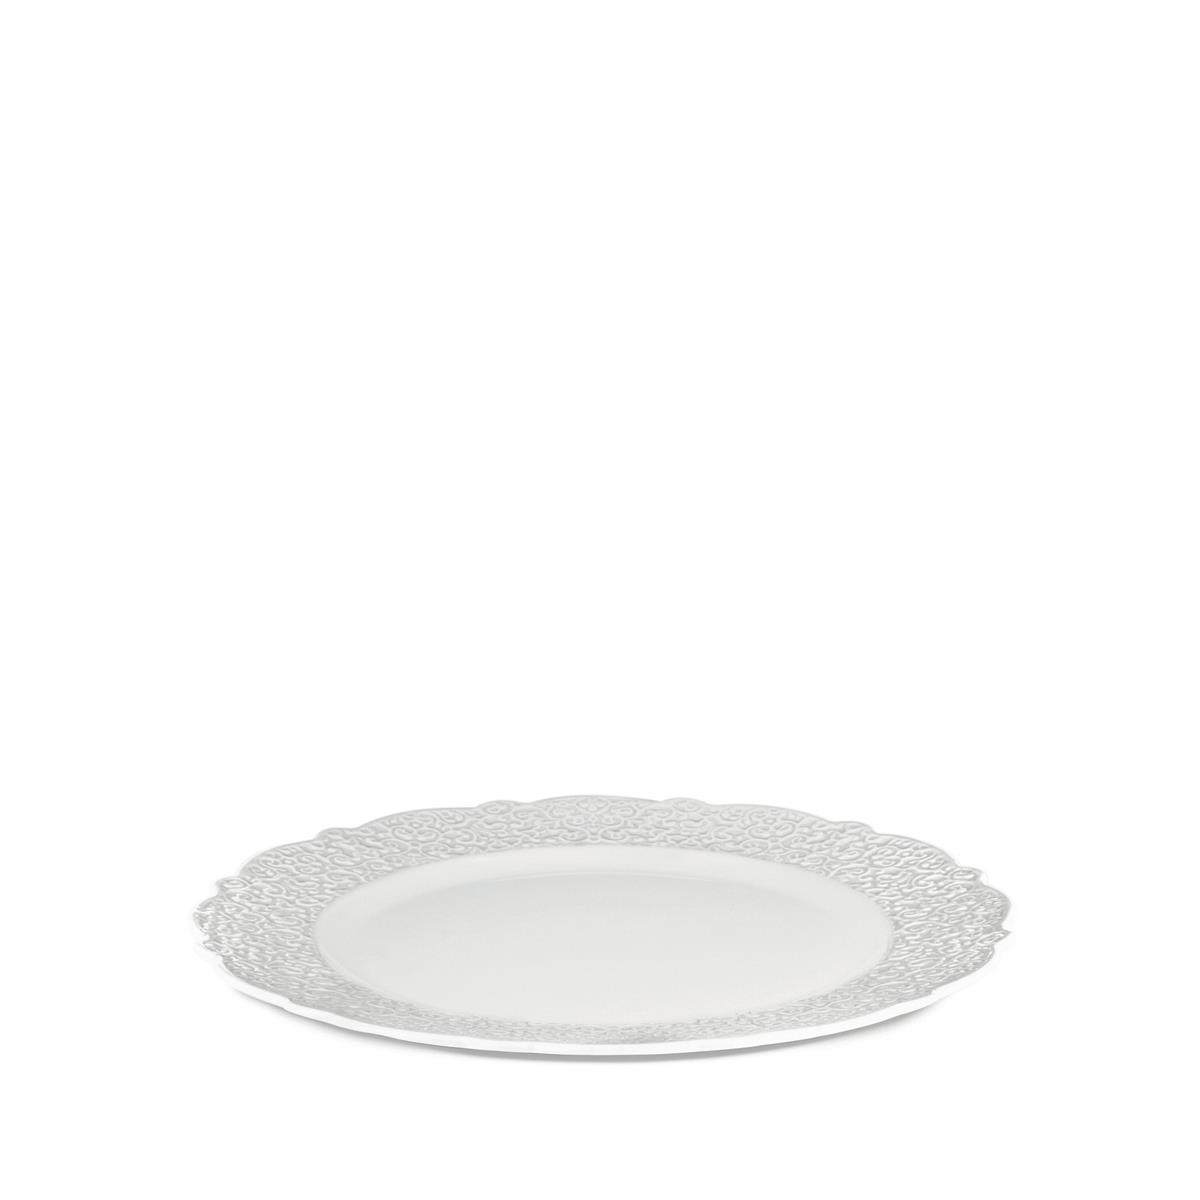 Alessi-Dressed Serving plate in white porcelain with relief decoration